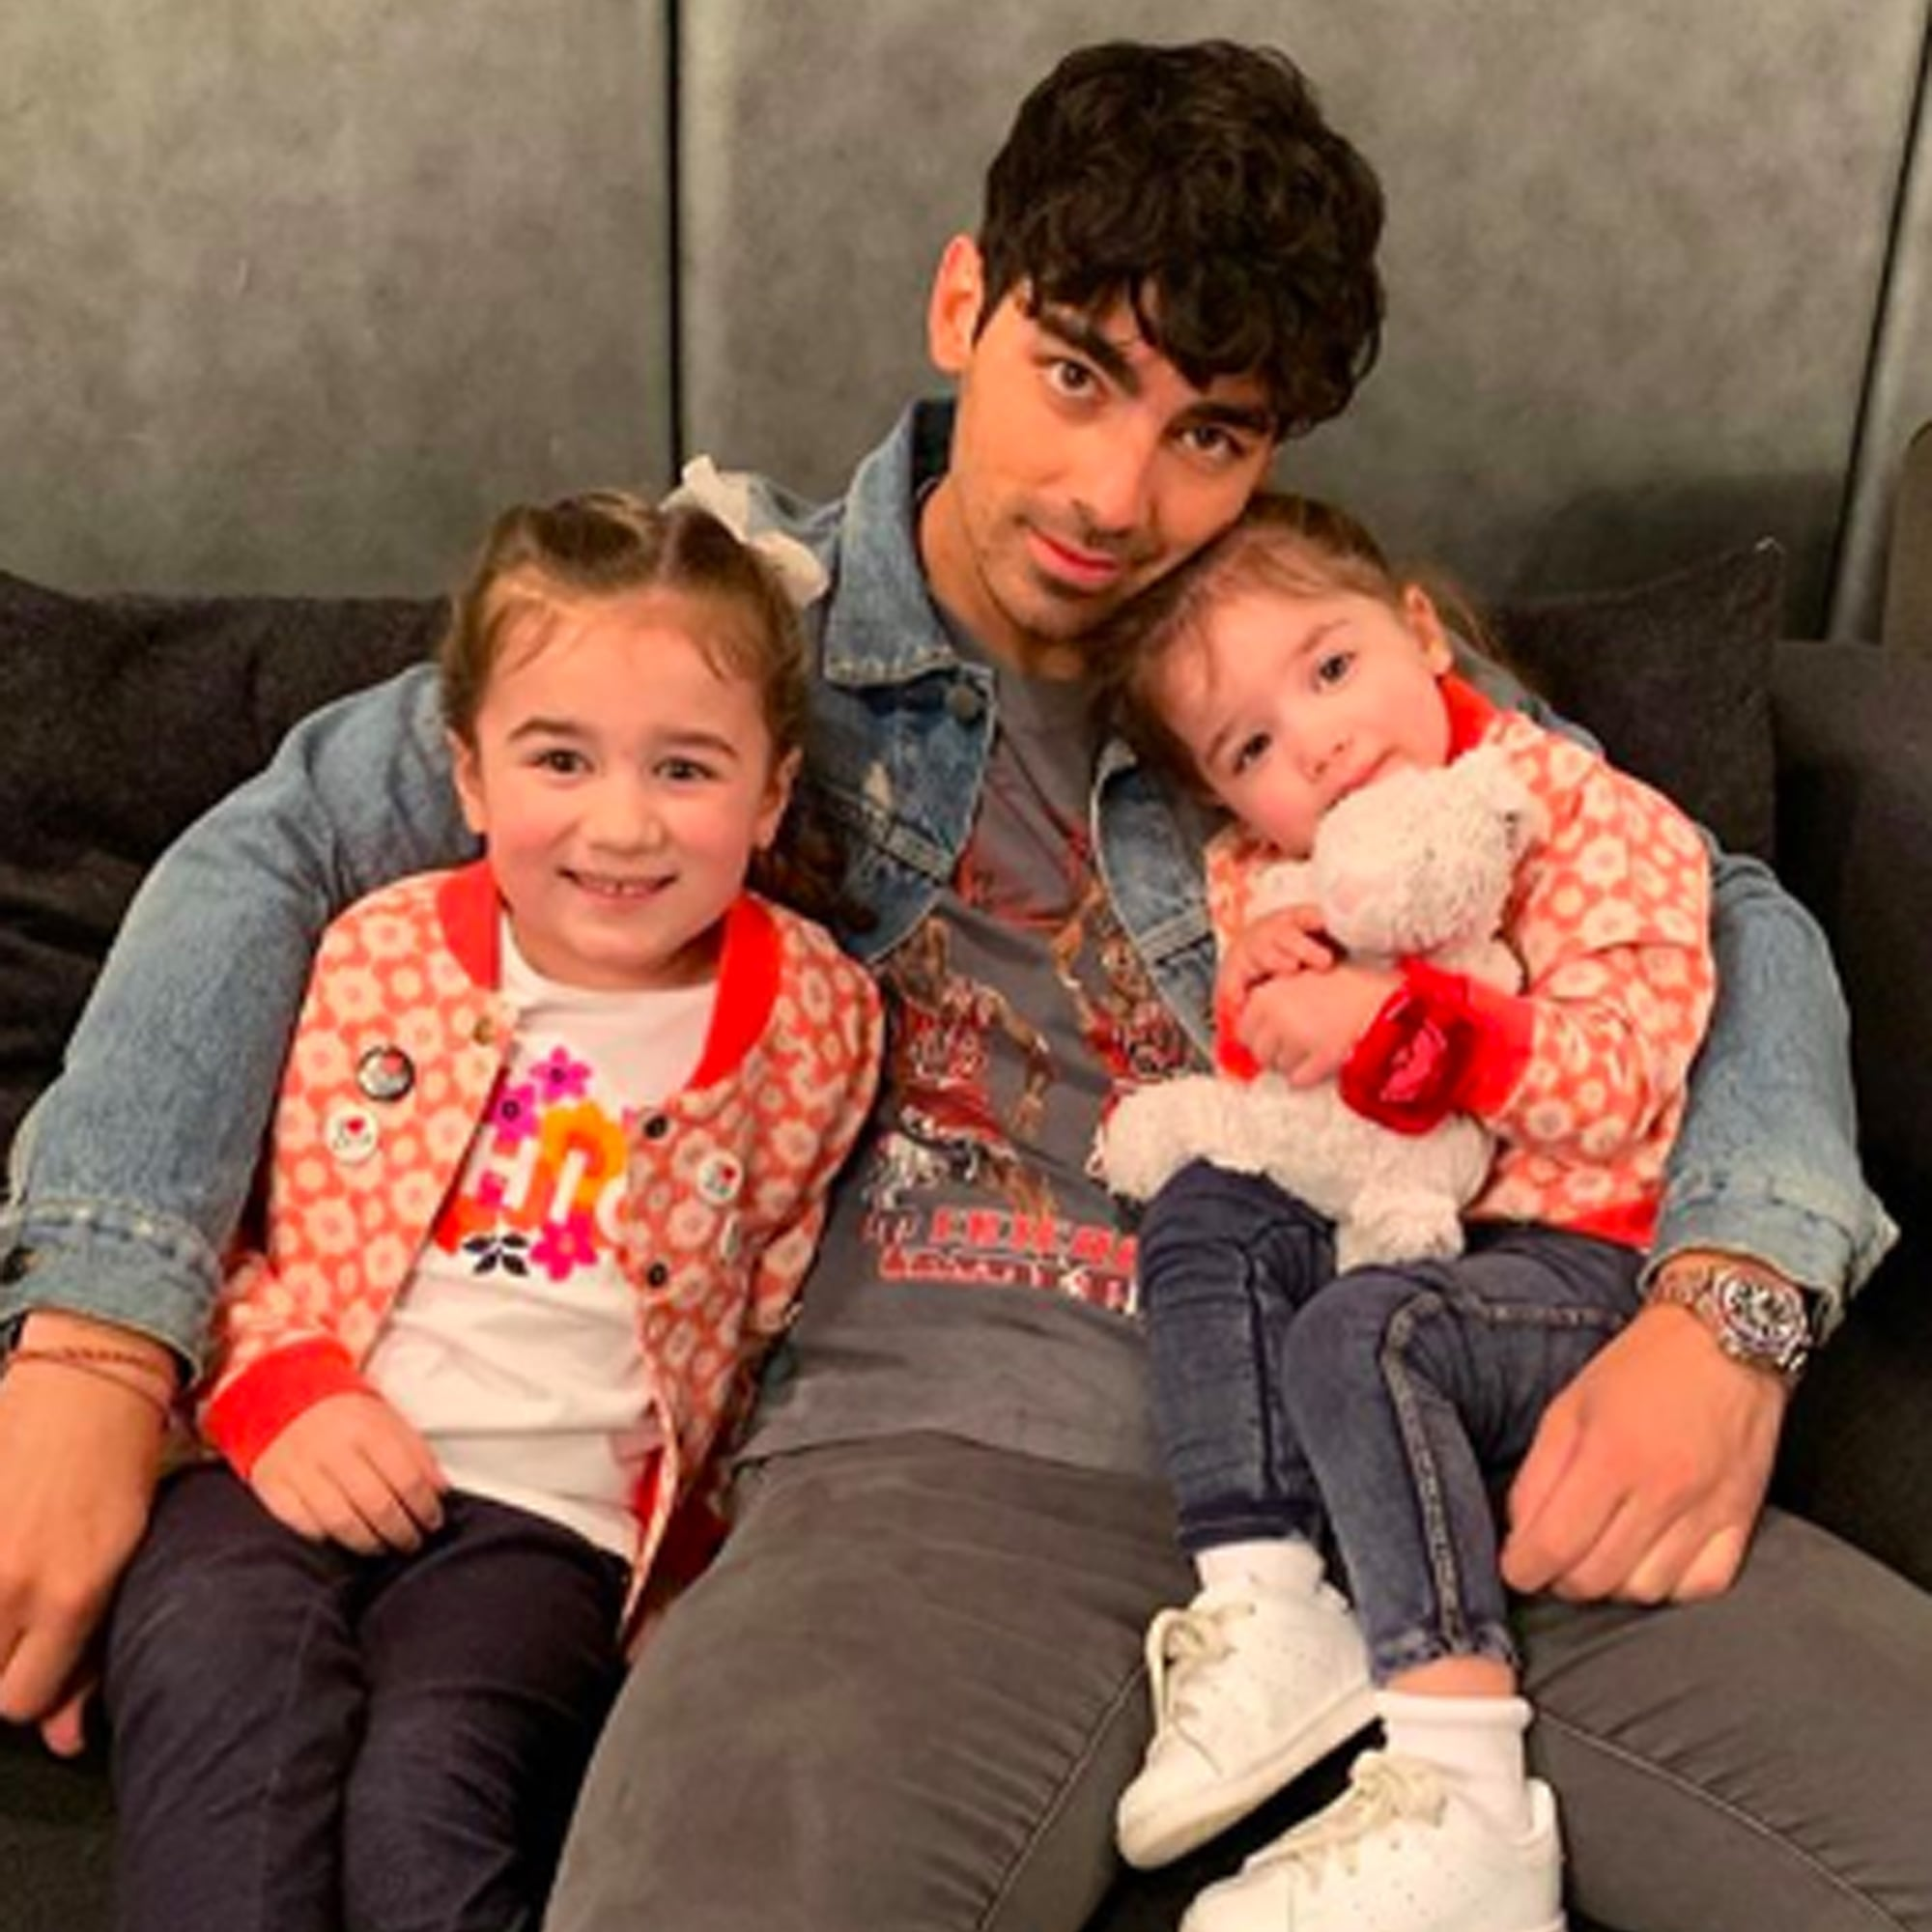 Joe Jonas With Nieces Alena and Valentina Pictures | POPSUGAR Celebrity UK